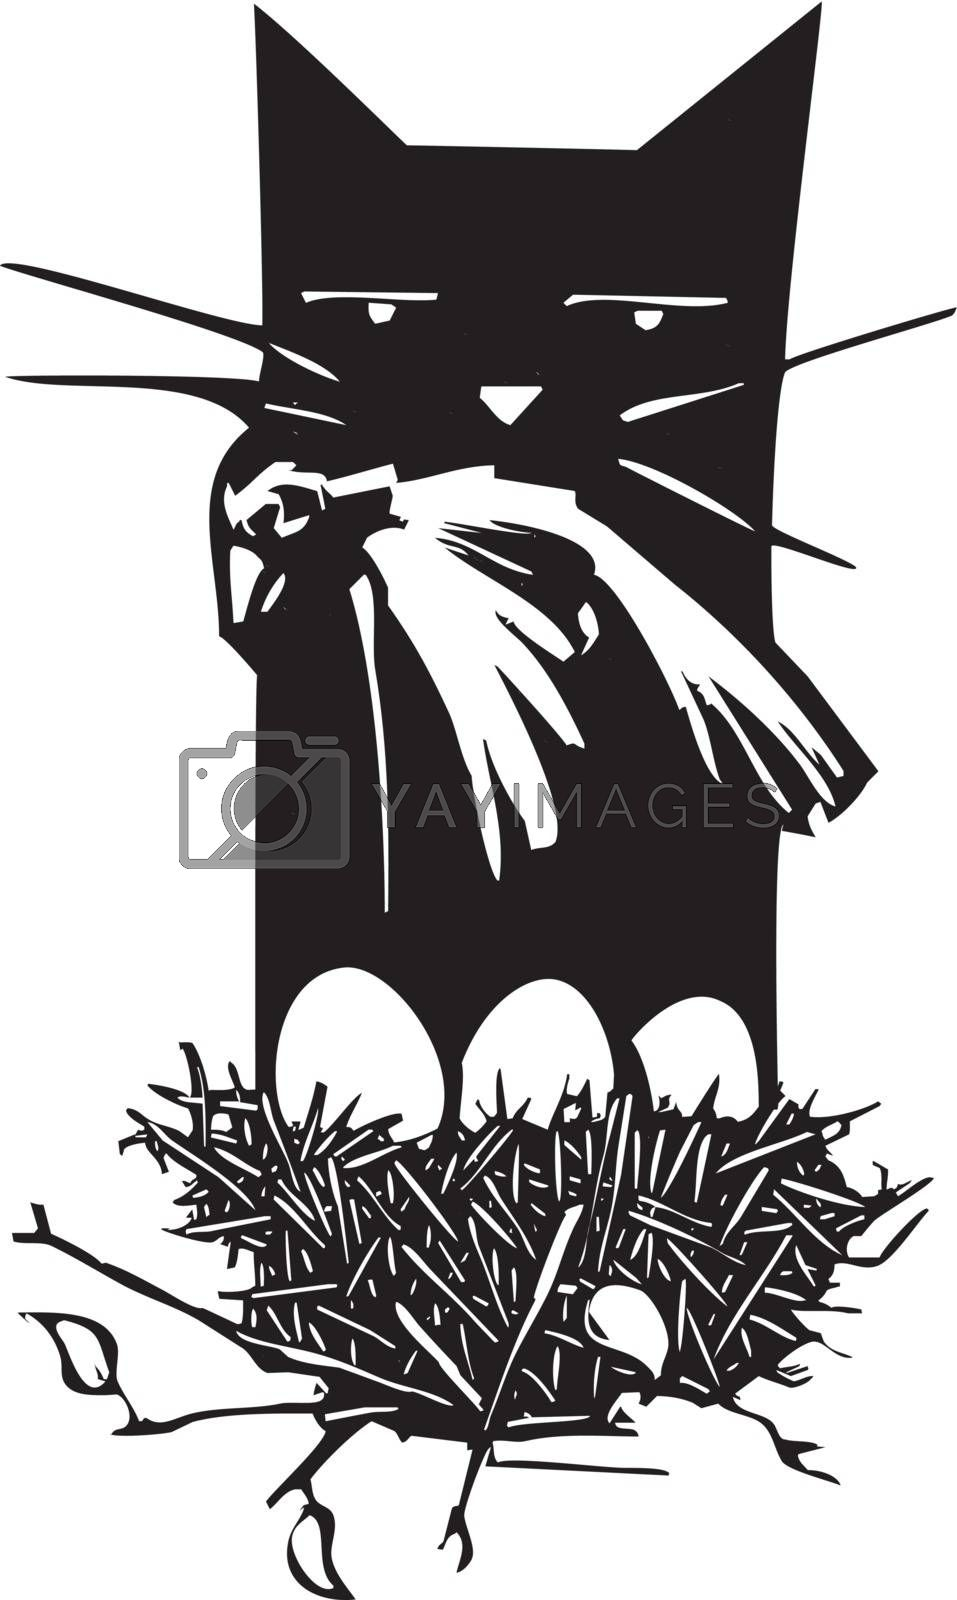 Woodcut style image of a cat killing a bird with a nest of eggs.